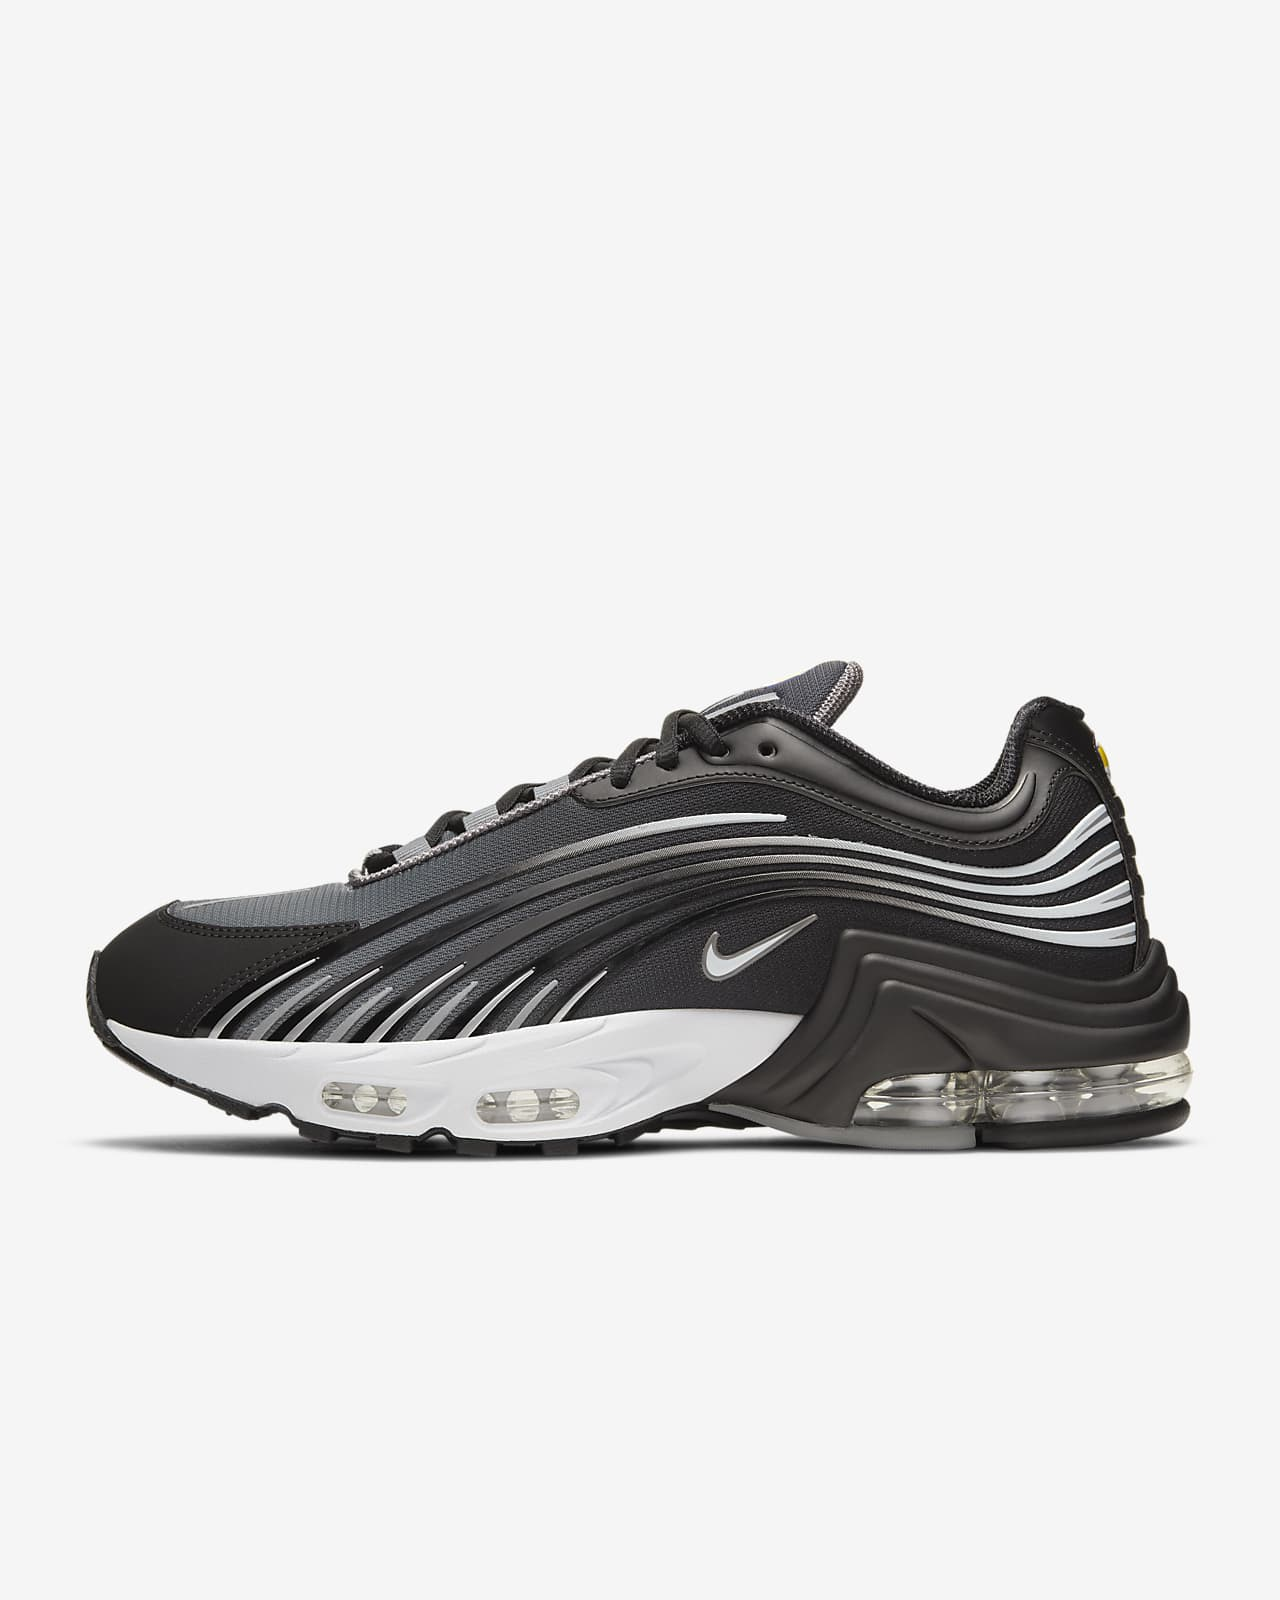 Chaussure Nike Air Max Plus II pour Homme